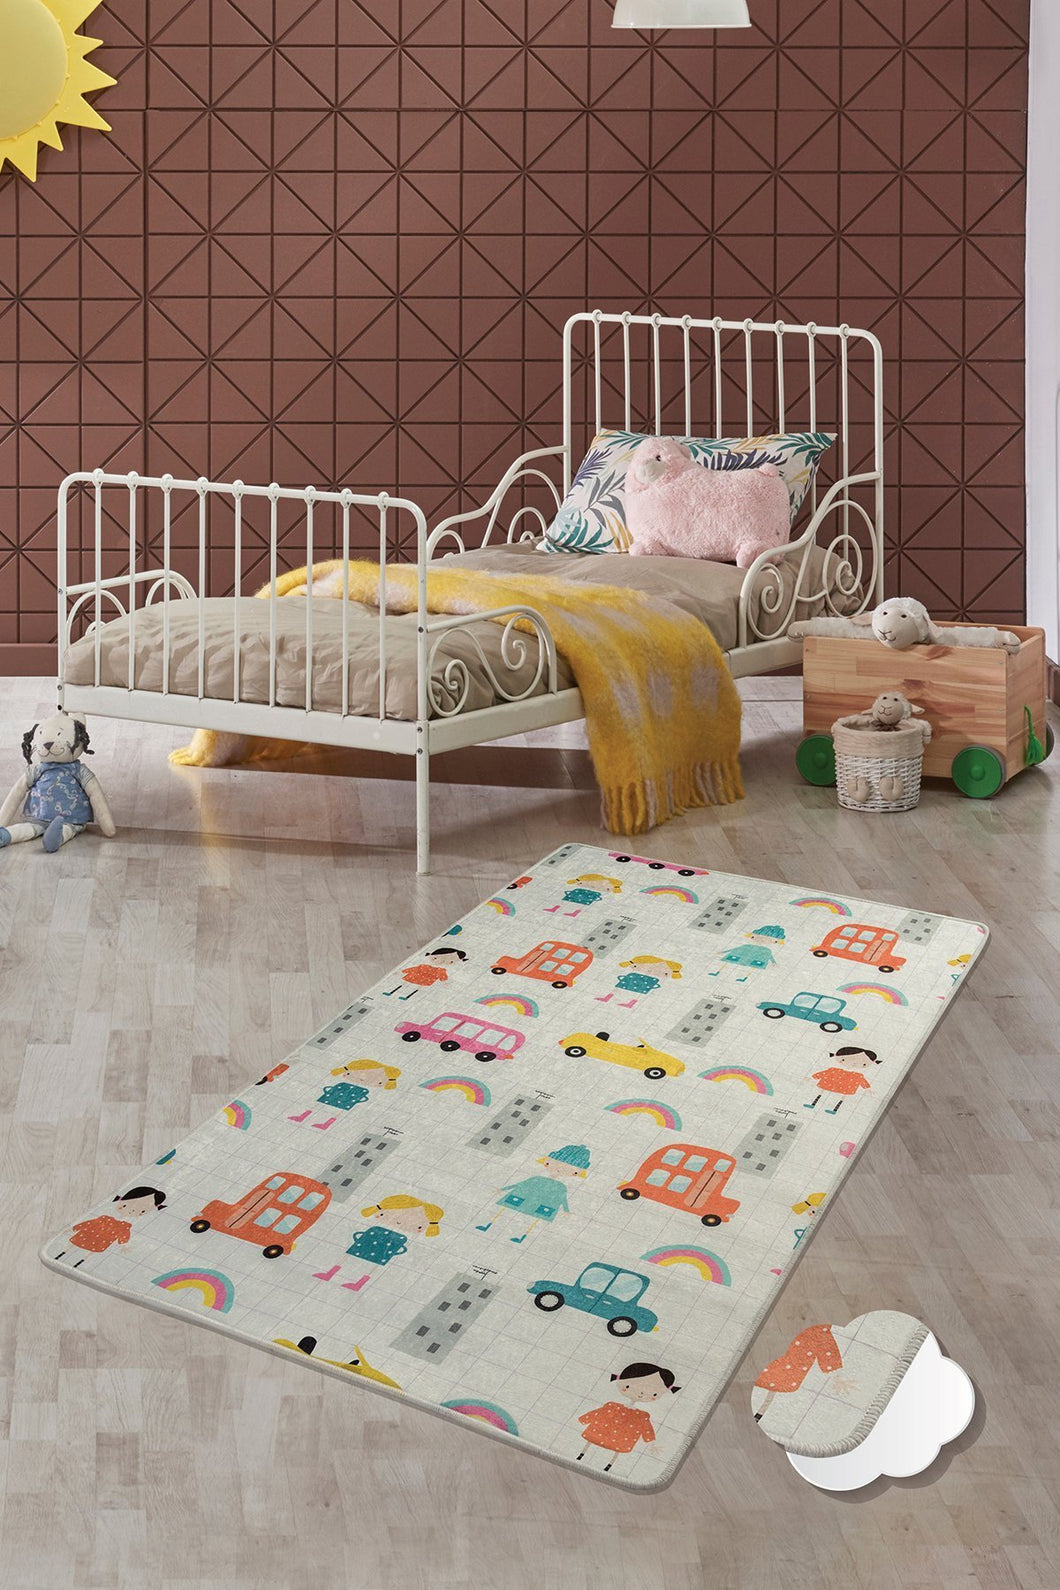 RugstoreX Town Rugs for kids Highway  3'x 5' 39